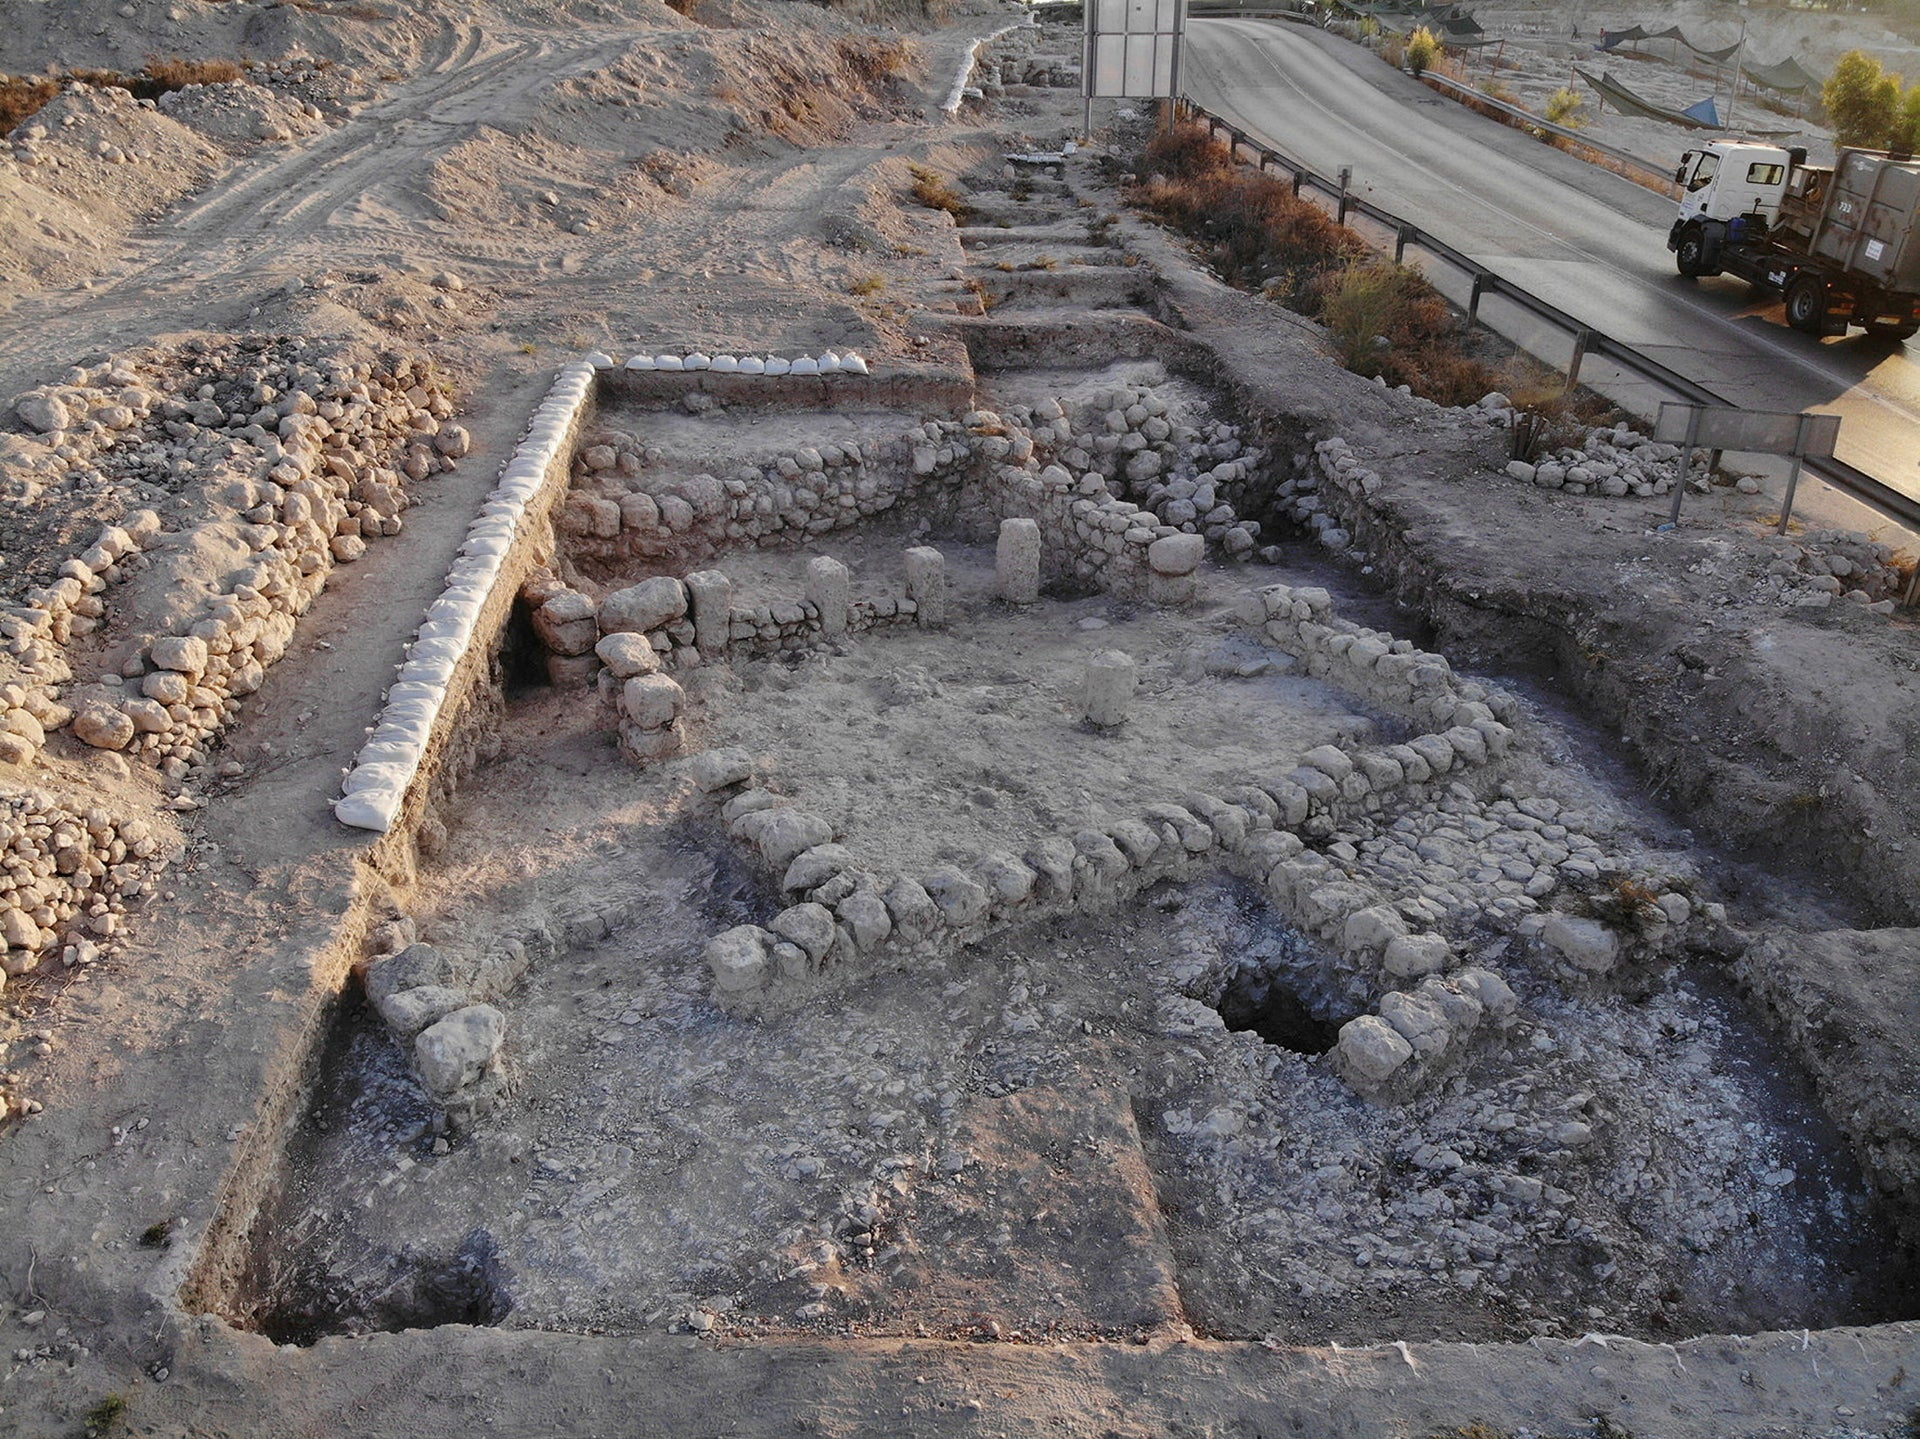 One of the areas that was excavated